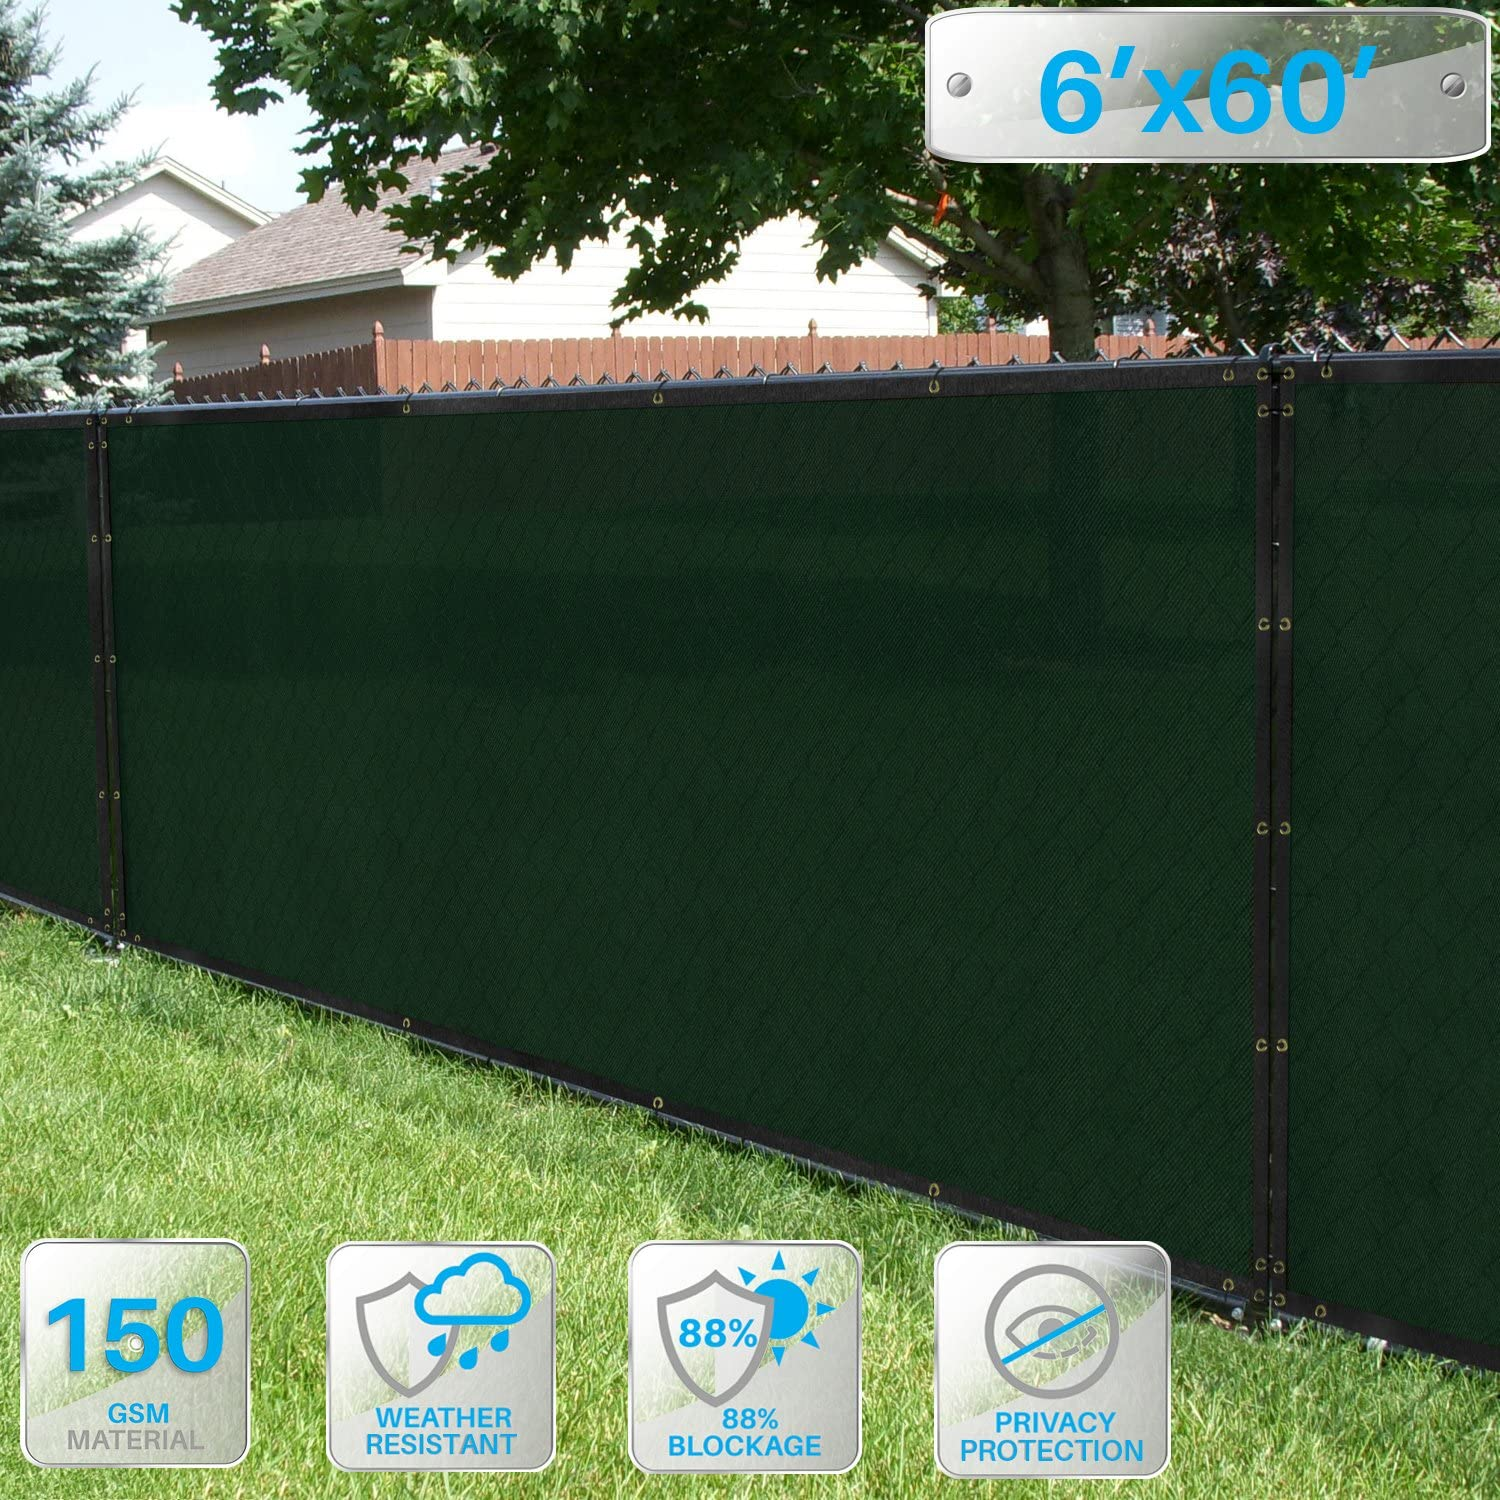 Patio Paradise 6 x 60 Dark Green Fence Privacy Screen, Commercial Outdoor Backyard Shade Windscreen Mesh Fabric with Brass Gromment 88 Blockage- 3 Years Warranty Customized